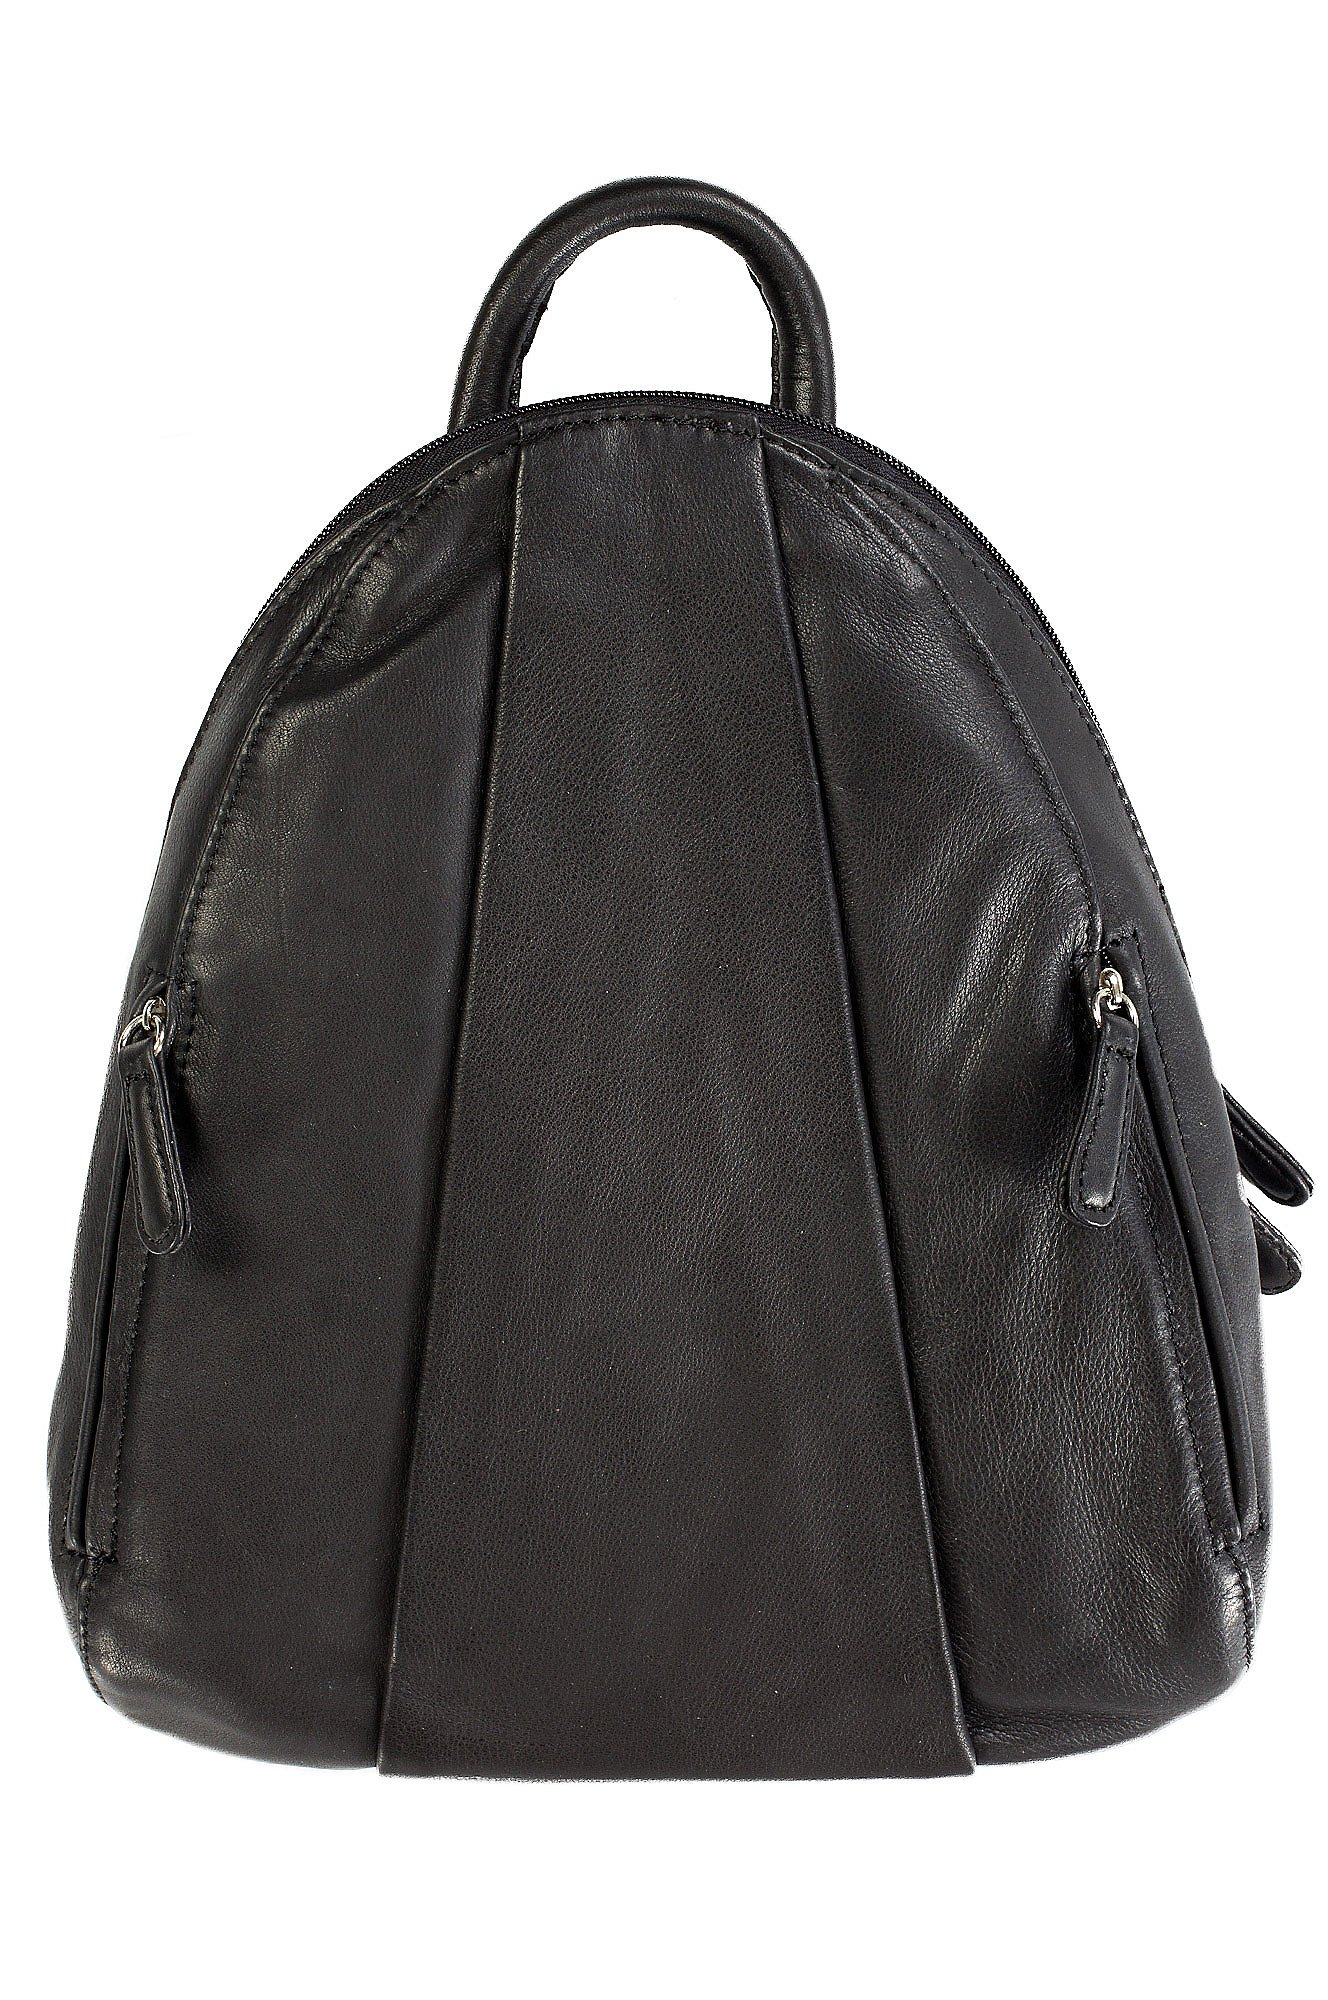 Women's Osgoode Marley Teardrop Leather Backpack Handbag,1 M US,Black by Osgoode Marley